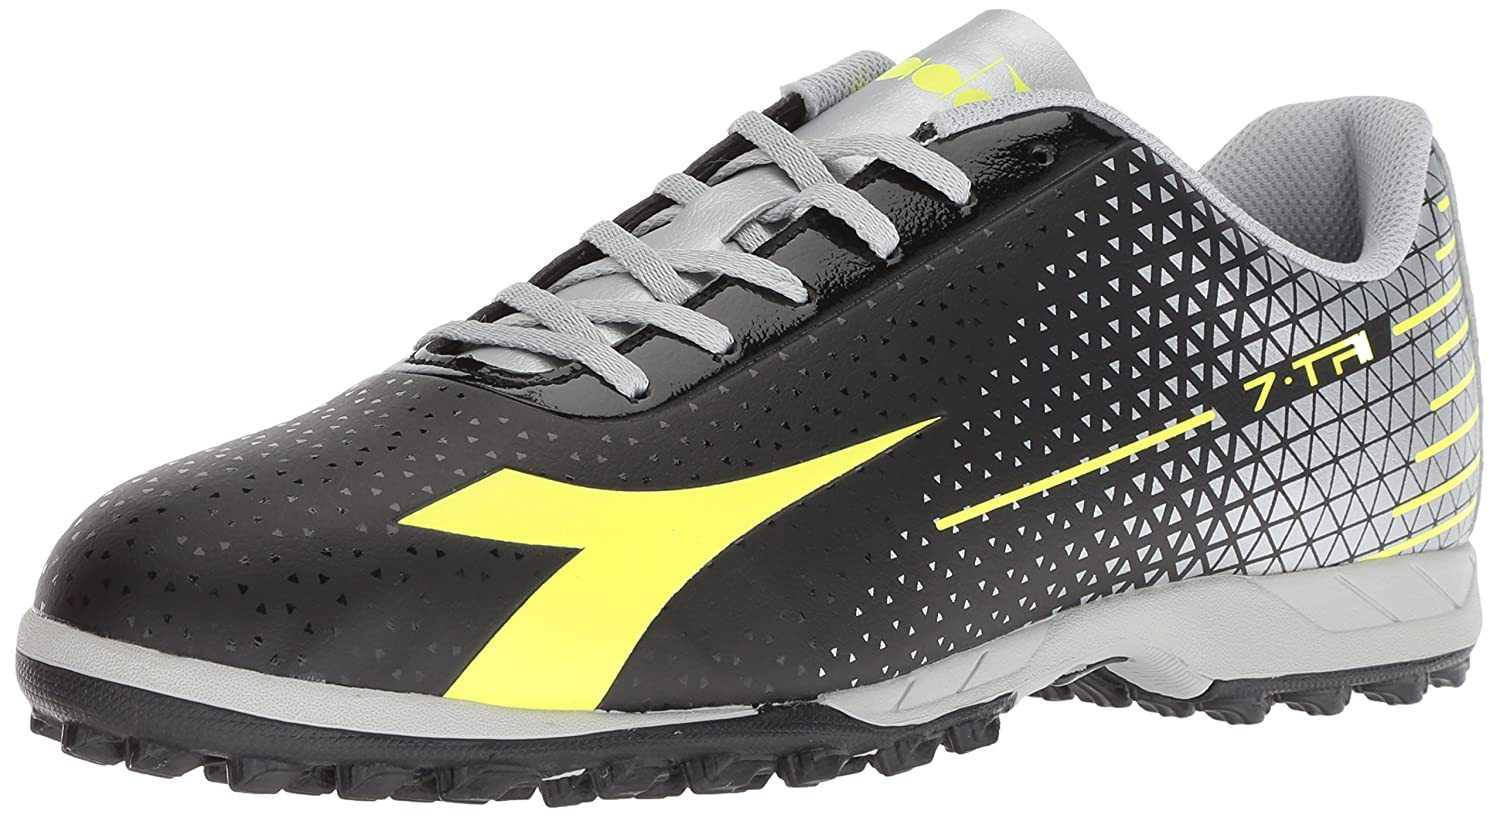 Diadora メンズ B07692X6JF 11.5 D(M) US|Black/Flo Yellow/Silver Black/Flo Yellow/Silver 11.5 D(M) US